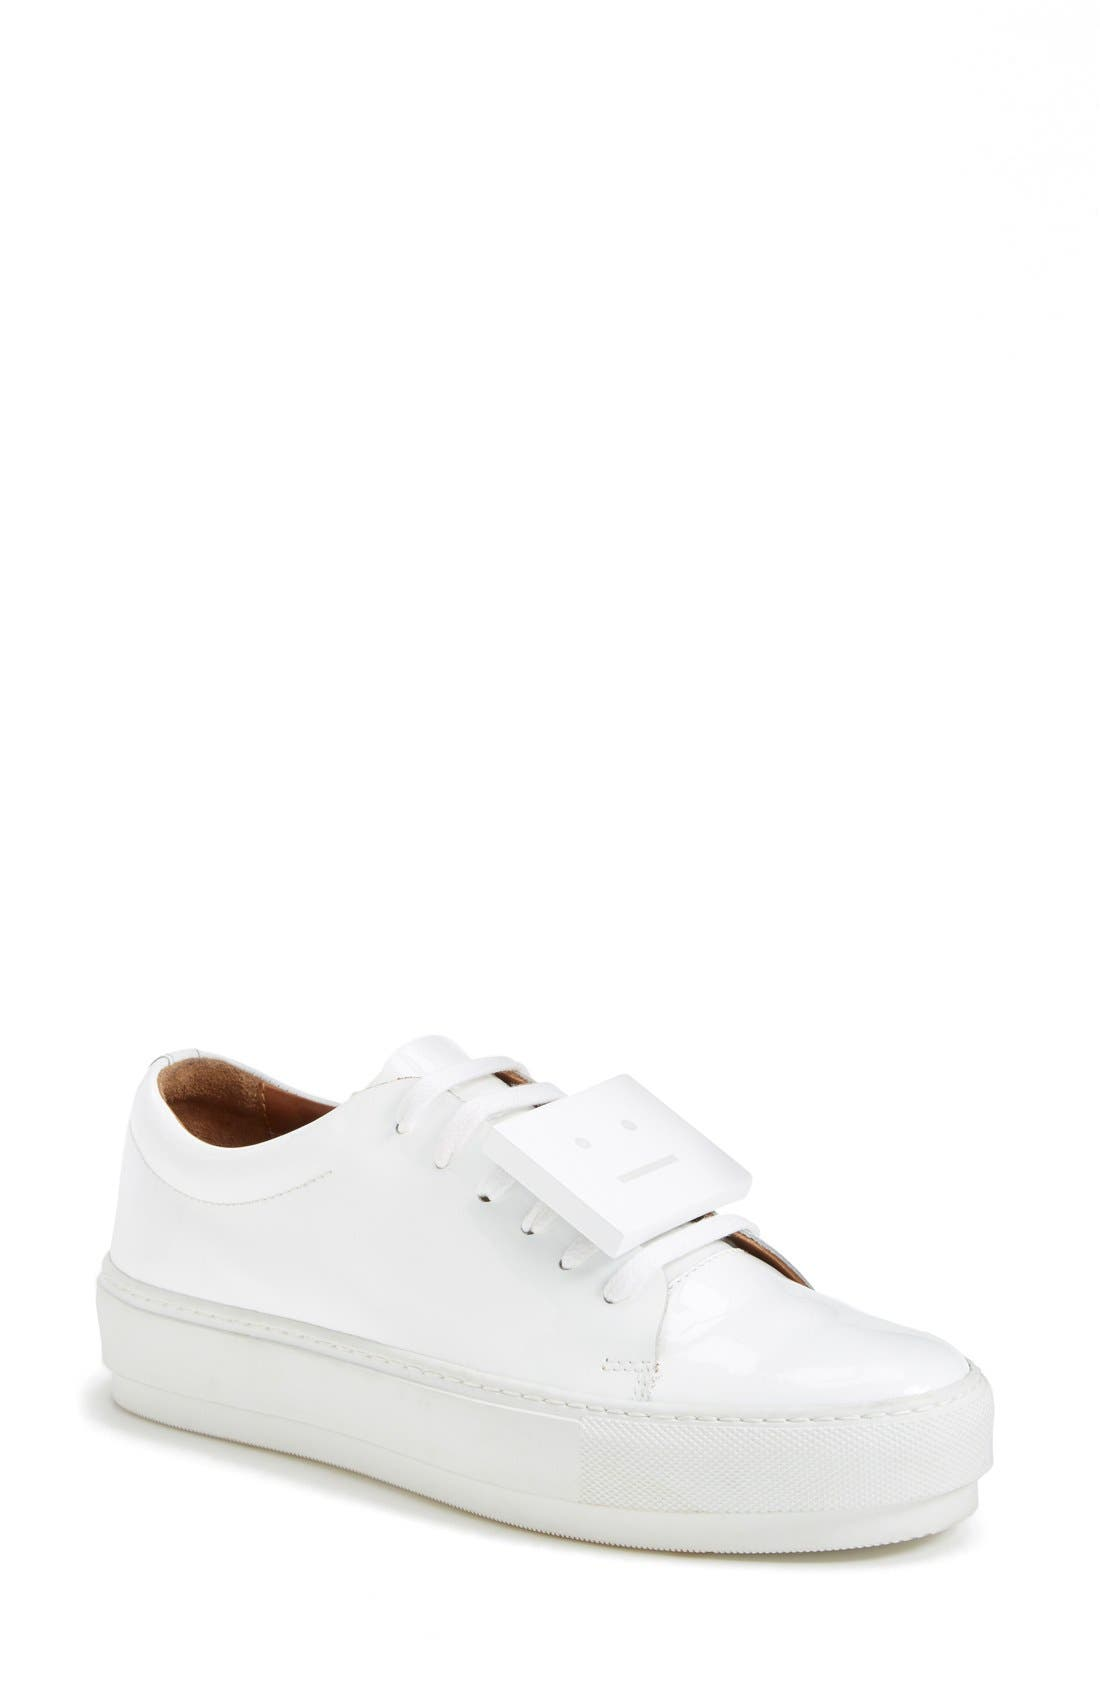 Adriana Leather Sneaker,                             Main thumbnail 1, color,                             100